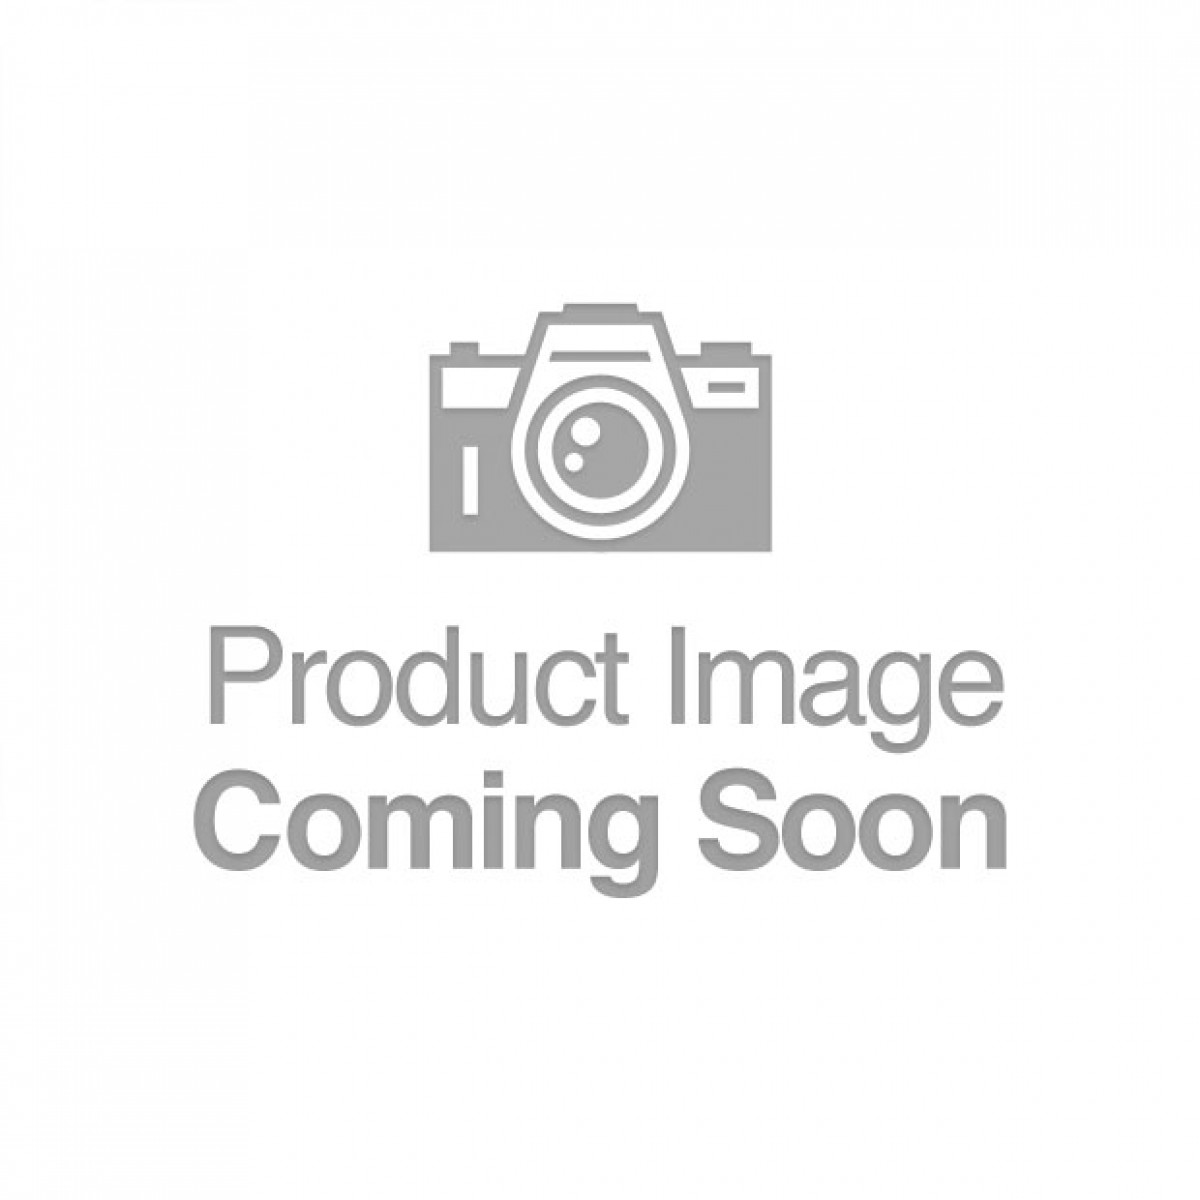 Wicked Sensual Care Simply Aqua Jelle Water Based Lubricant - 4 oz